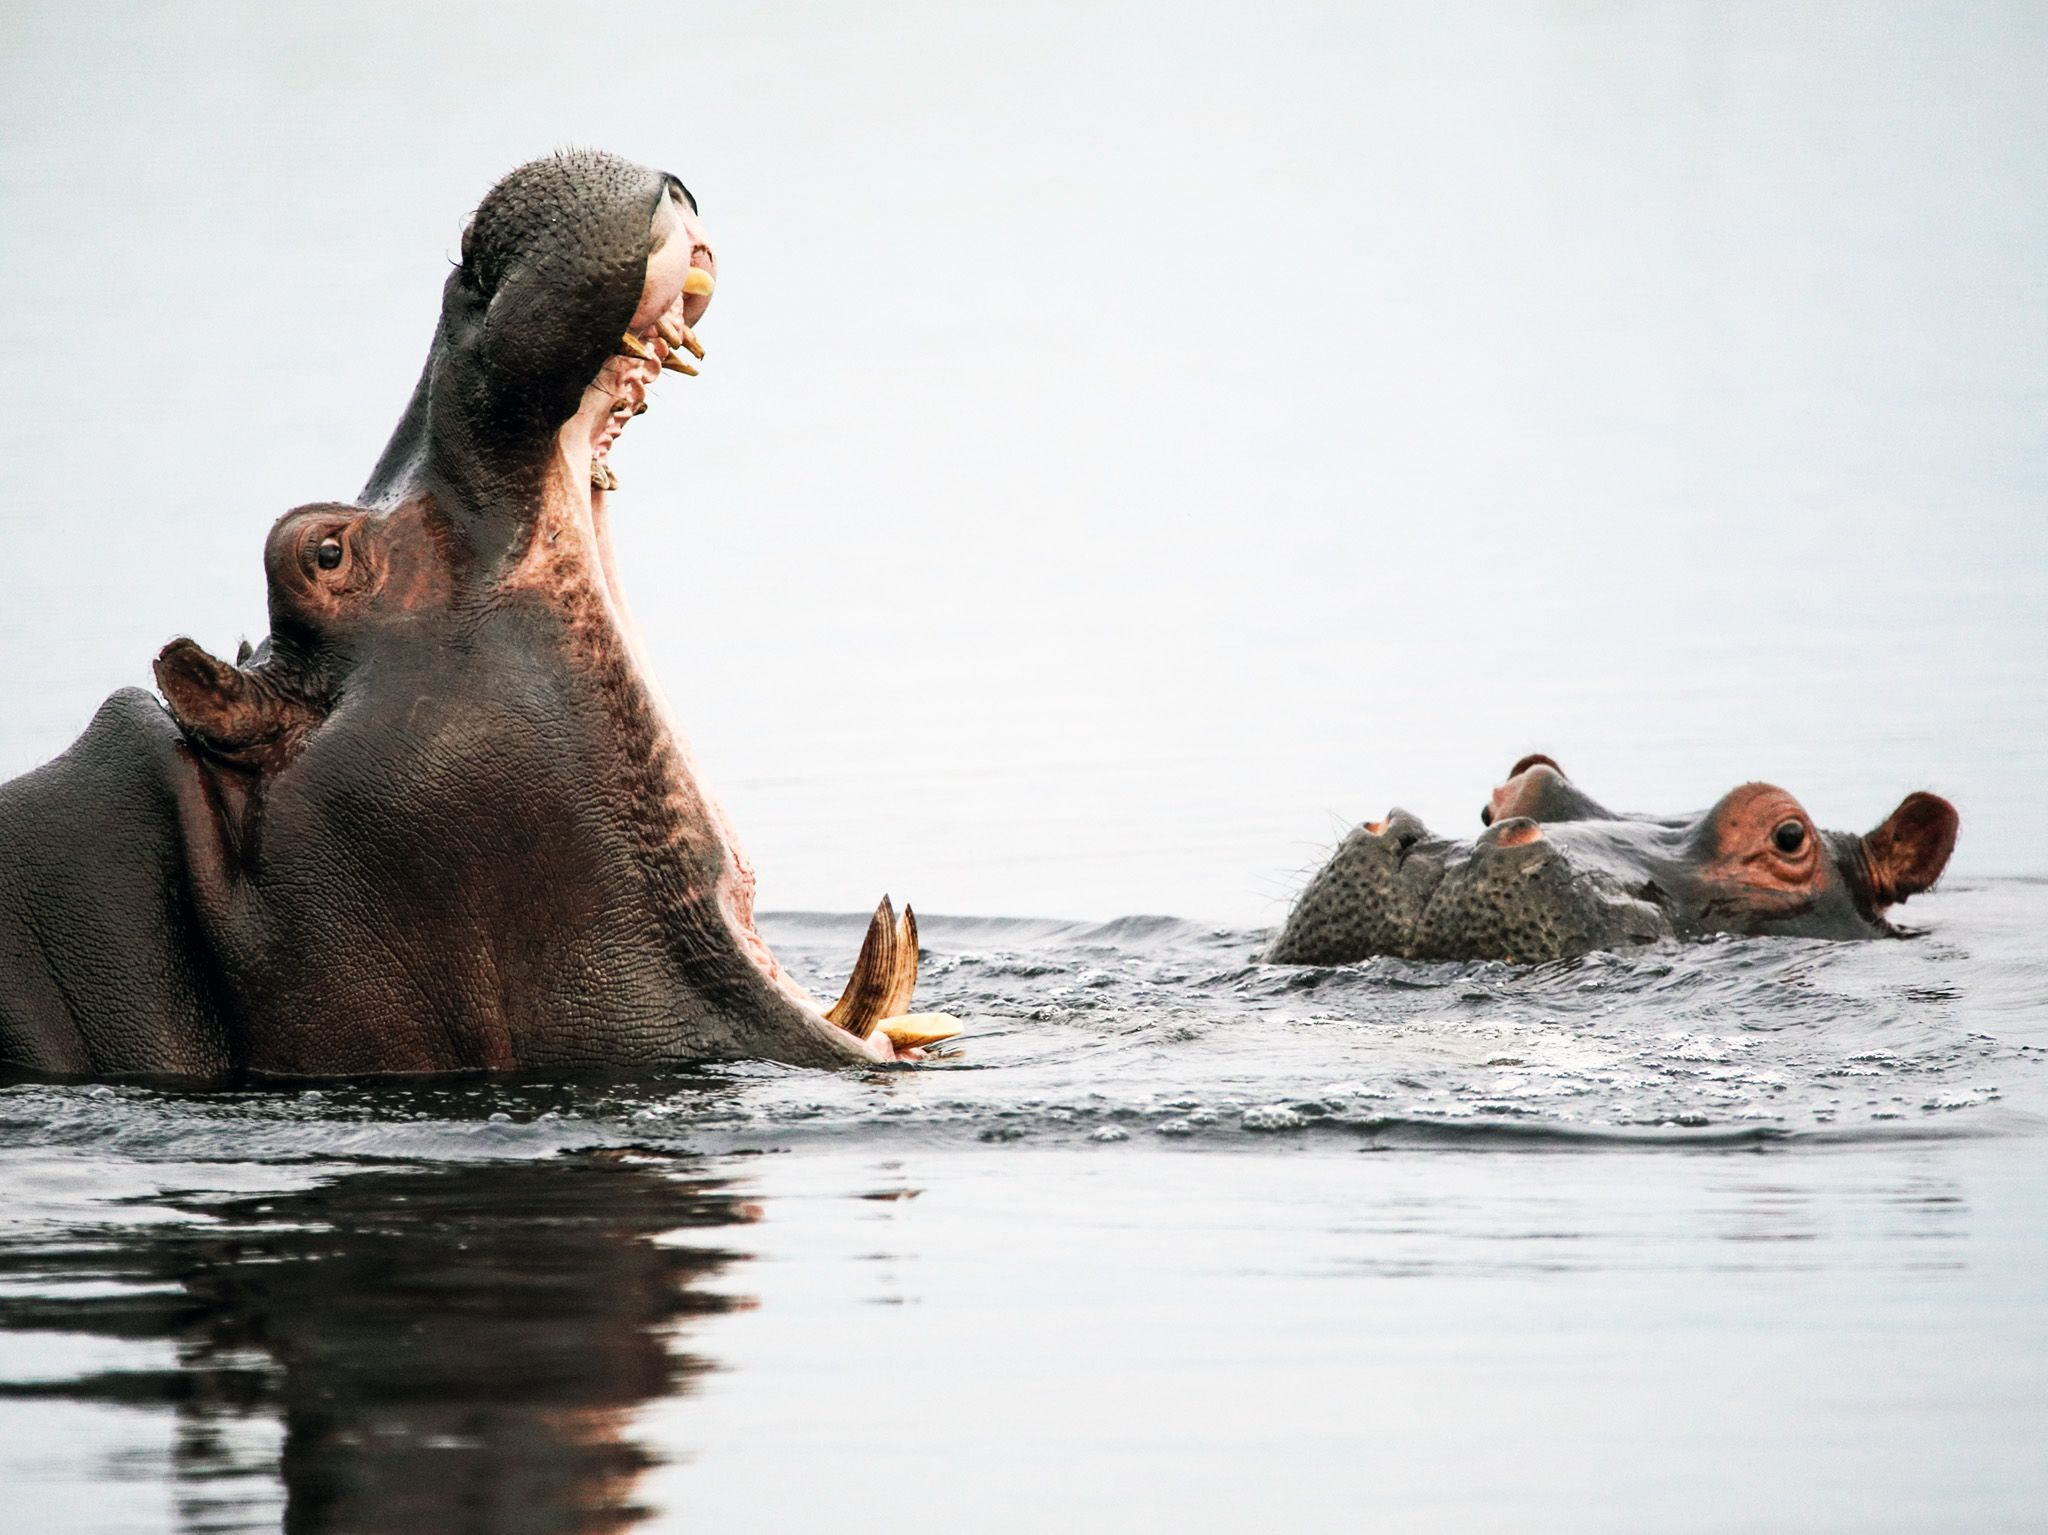 Botswana:  A male hippo attempts to impress a female as it opens its mouth wide showing off it... [Foto del giorno - November 2018]